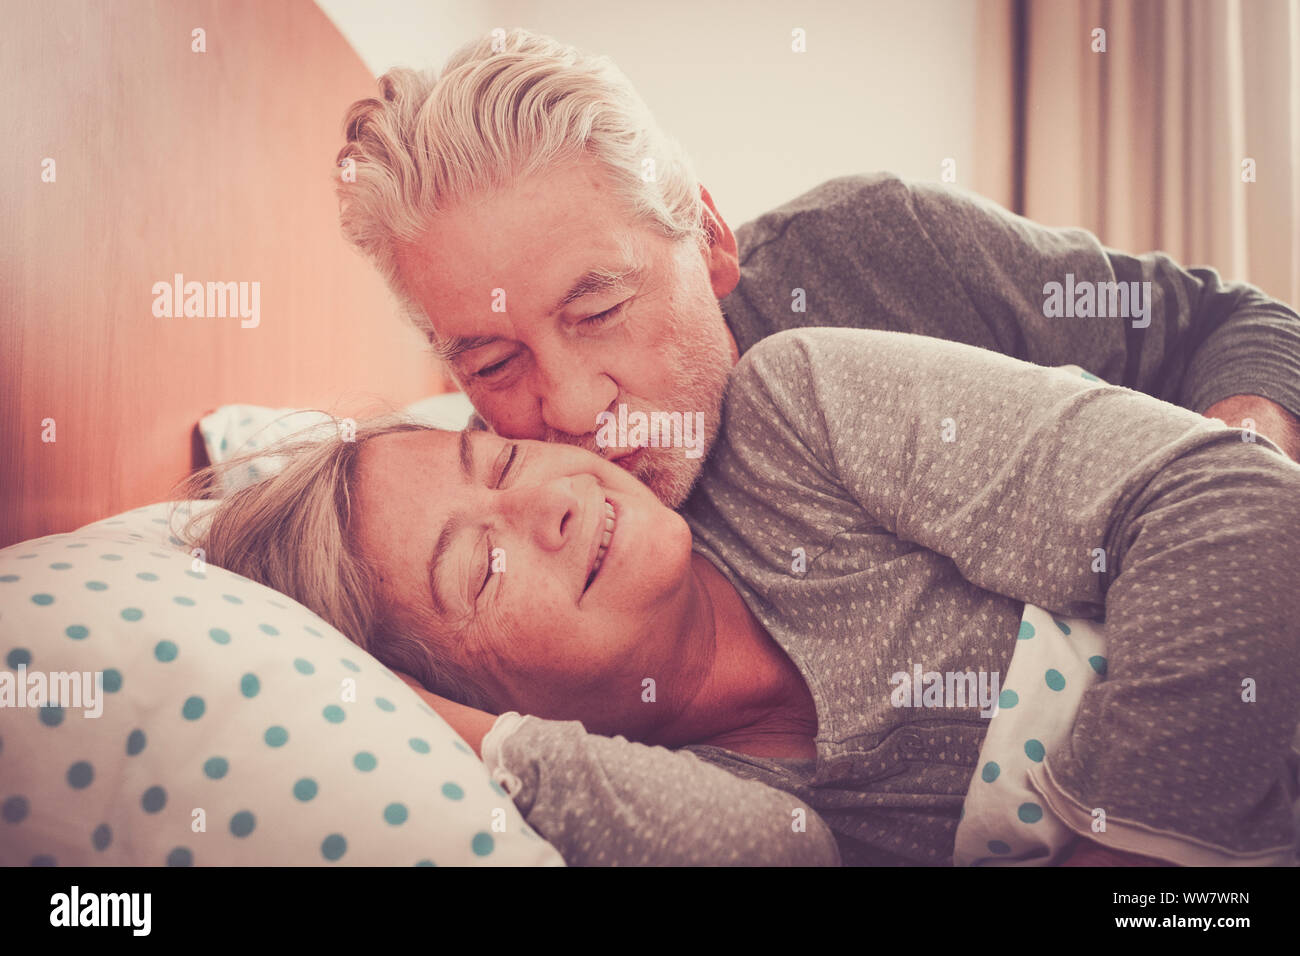 Couple of senior man and woman waking up and smiling with a hug while are in the bed at home. Vintage filter and light in the back. The man kiss the woman with love Stock Photo